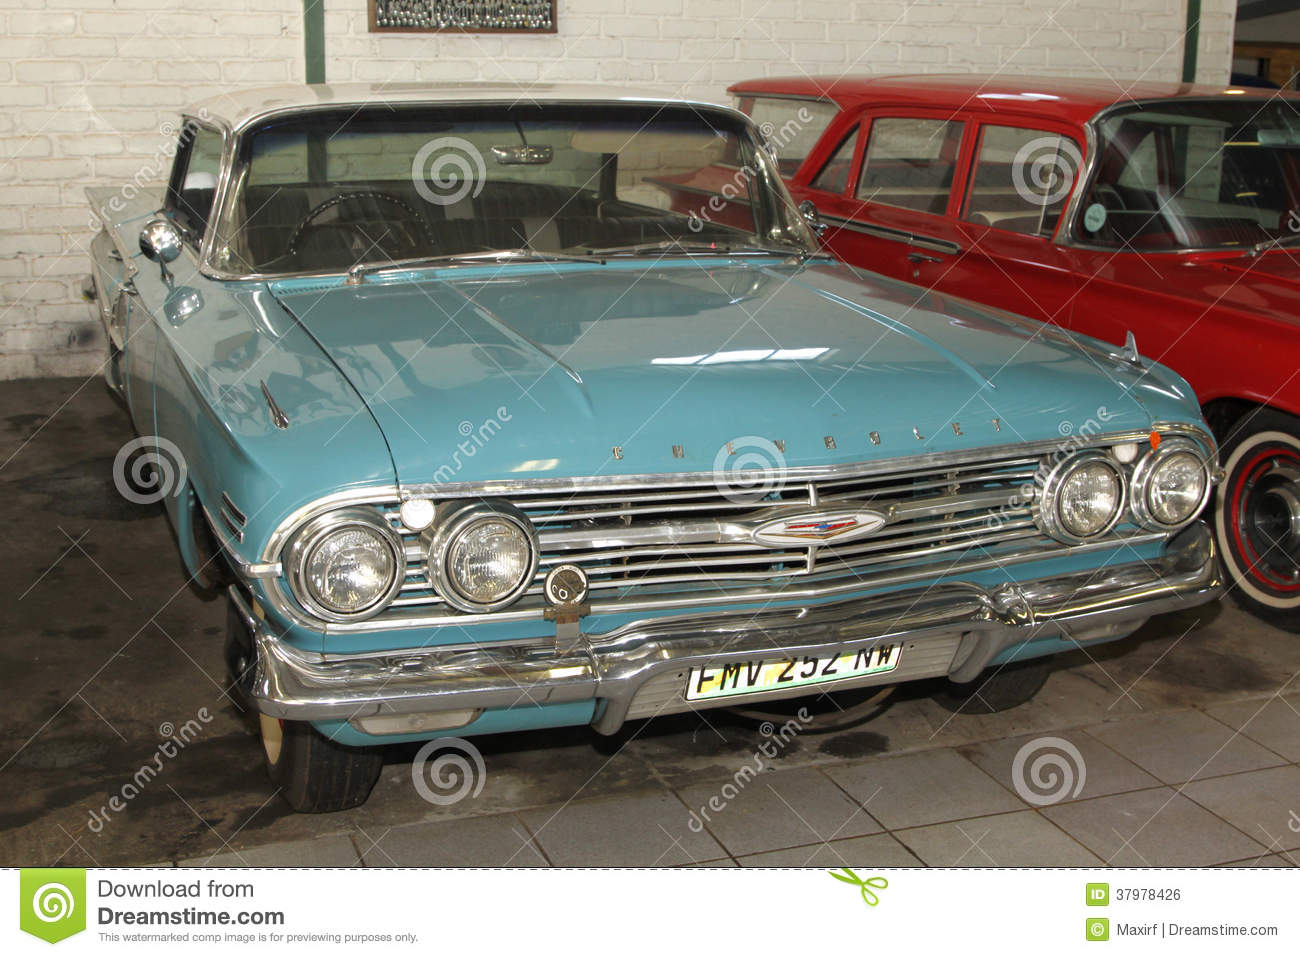 Rustenburg South Africa  city photos gallery : RUSTENBURG SOUTH AFRICA – FEBRUARY 15 Blue 1960 Chevrolet Impala